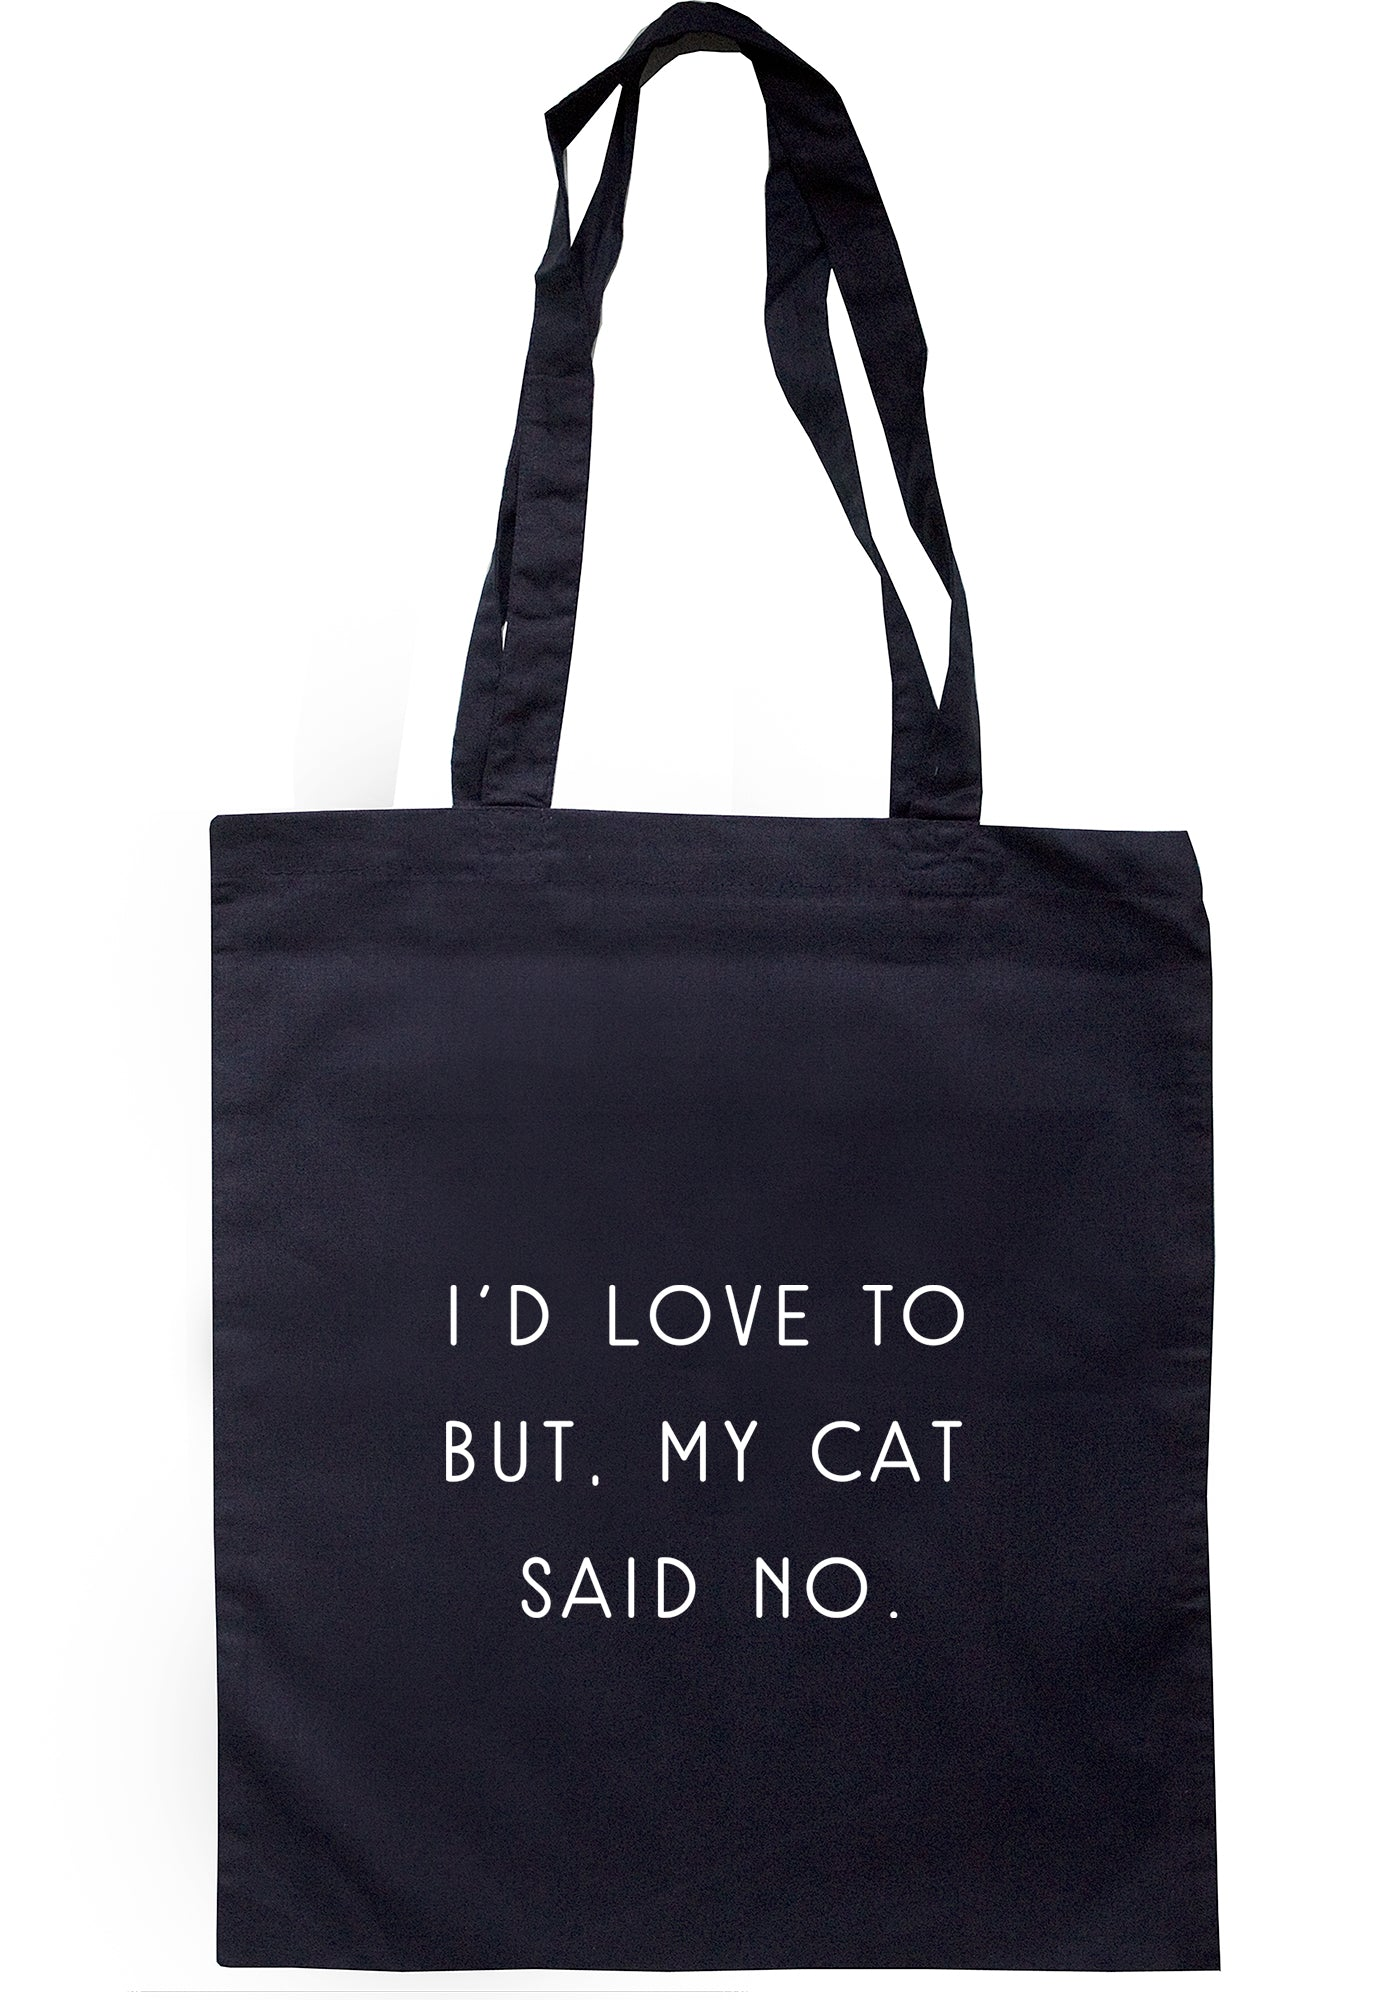 I'd Love To But, My Cat Said No Tote Bag S1060 - Illustrated Identity Ltd.